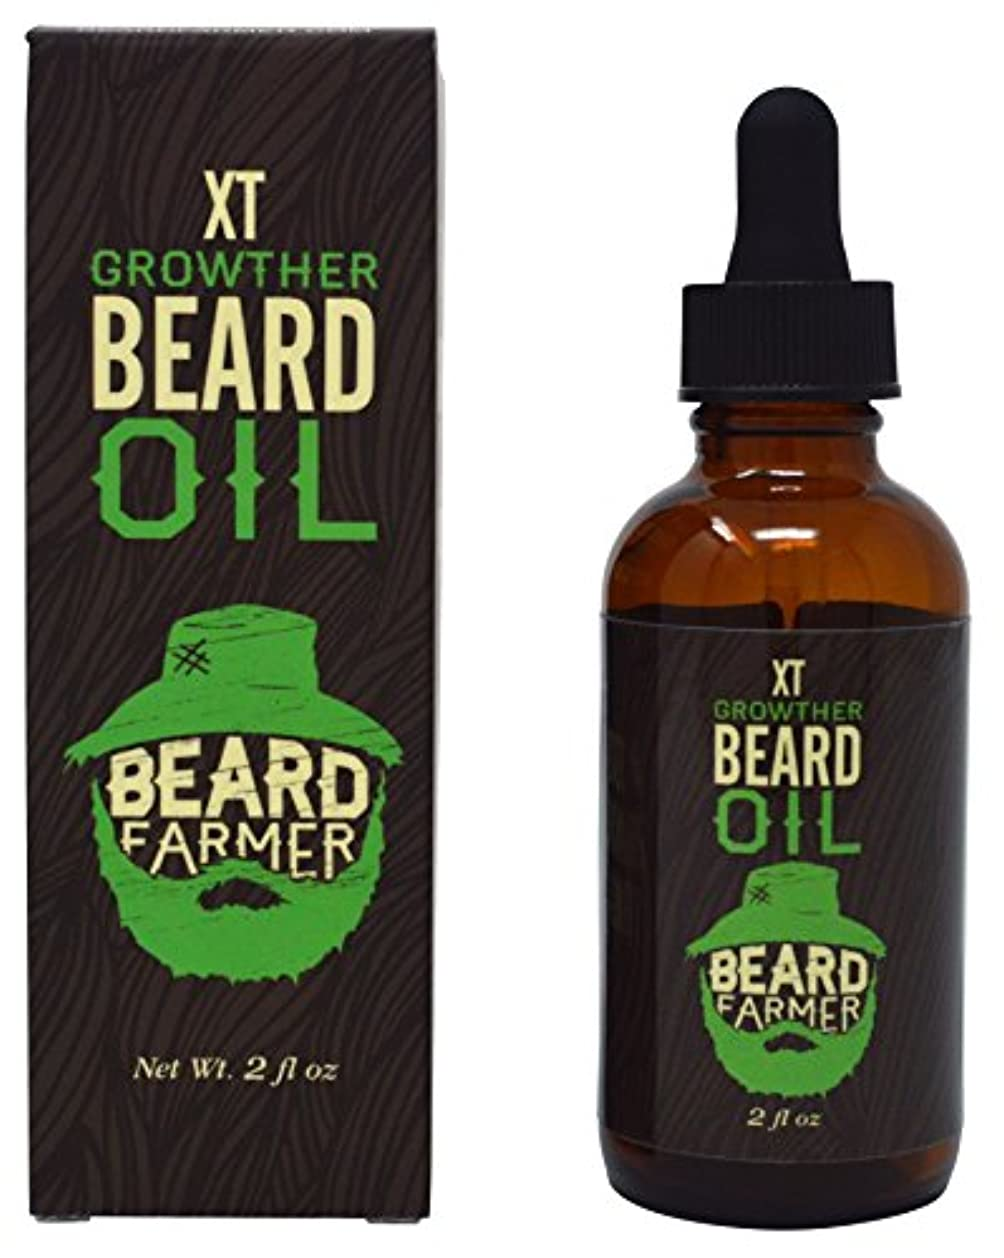 モードコールド合法Beard Farmer - Growther XT Beard Oil (Extra Fast Beard Growth) All Natural Beard Growth Oil 2floz